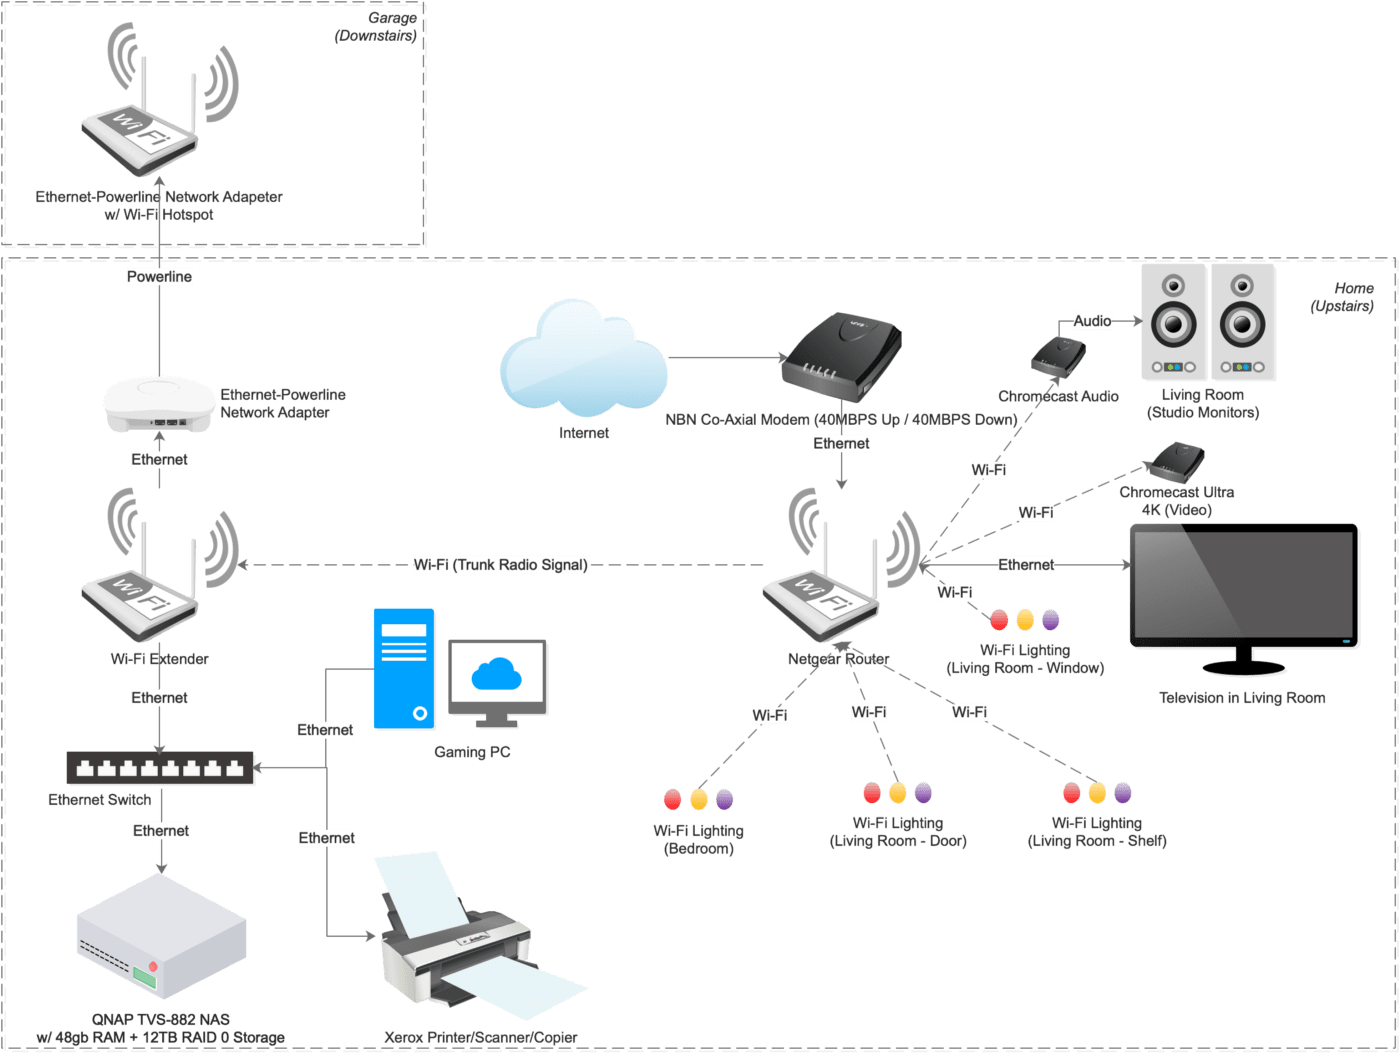 hight resolution of as you can see from the above infrastructure diagram there are a fair number of devices connected within my home network it s pretty self explanatory